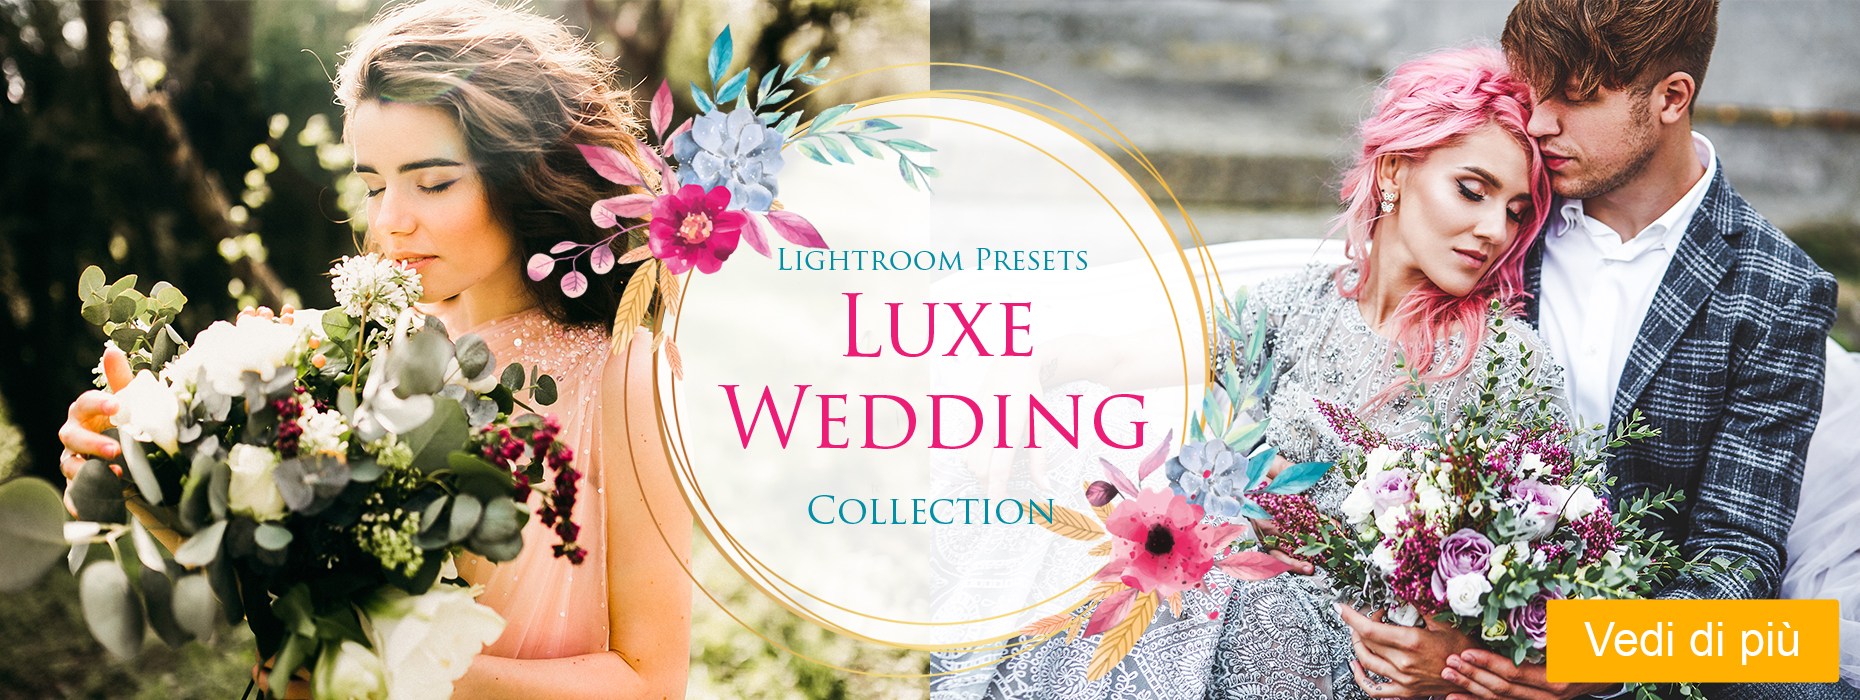 lightroom discoteca gratis wedding entire collection